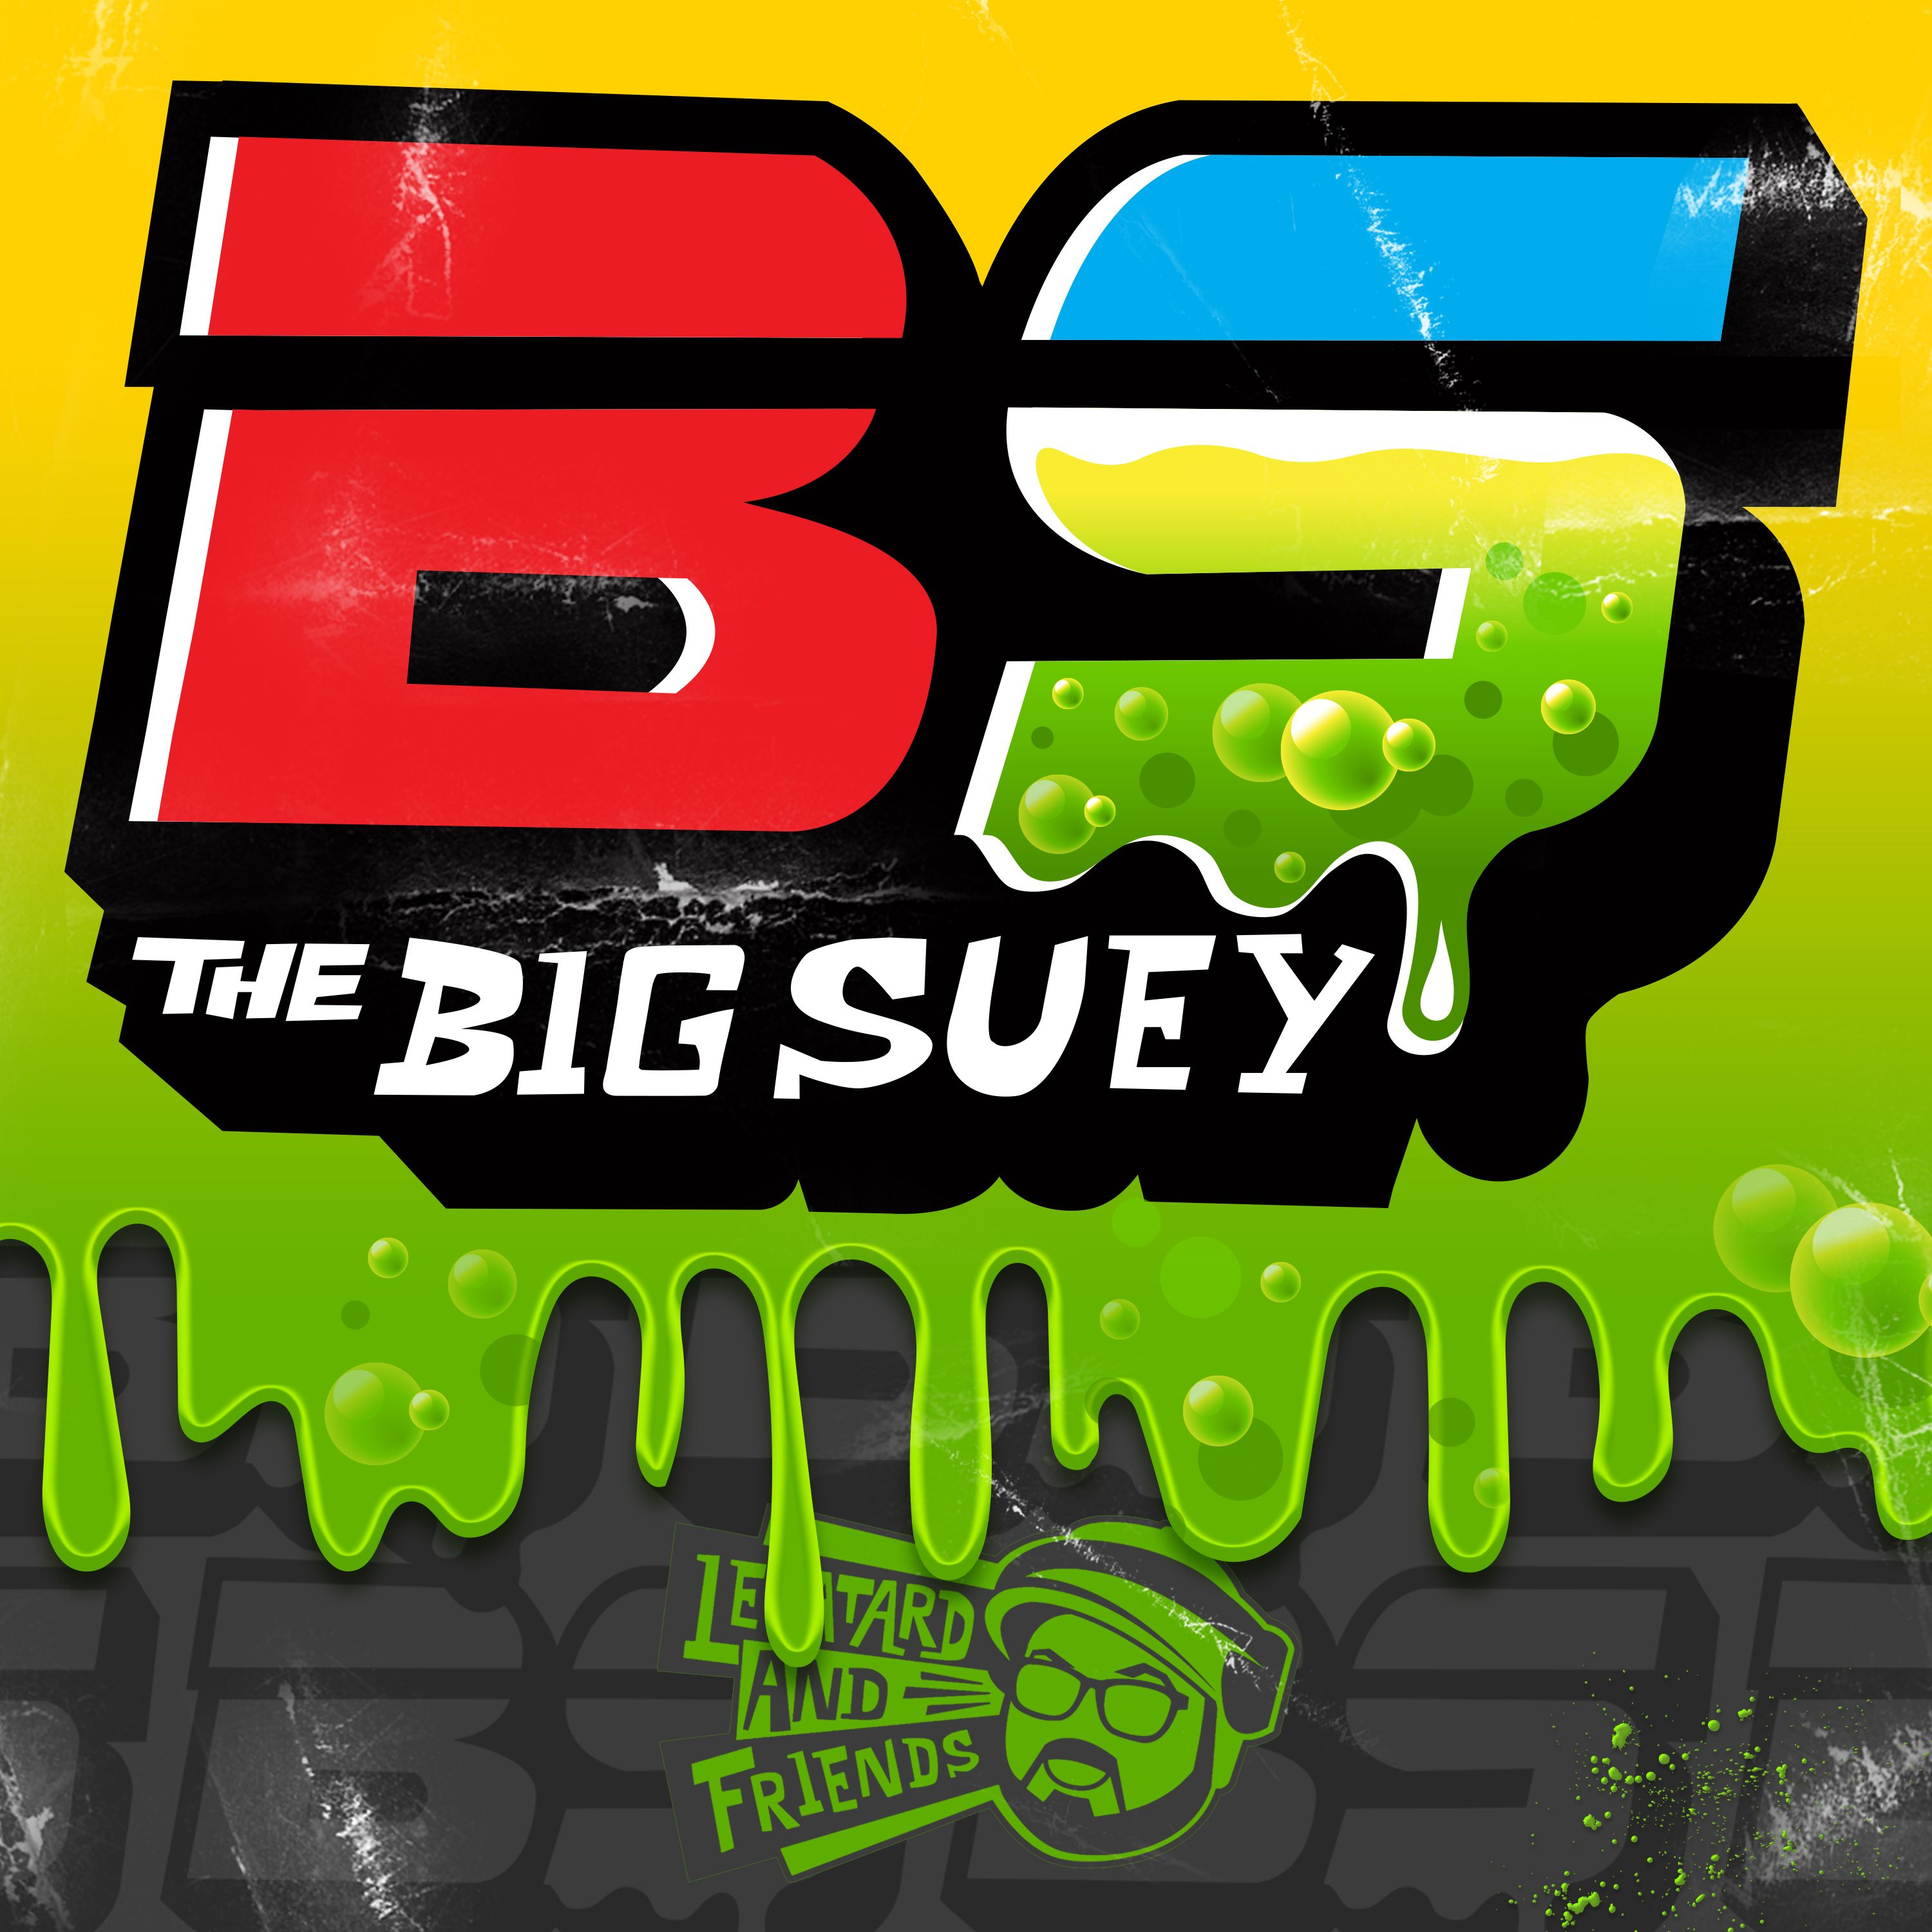 The Big Suey: Security Issues